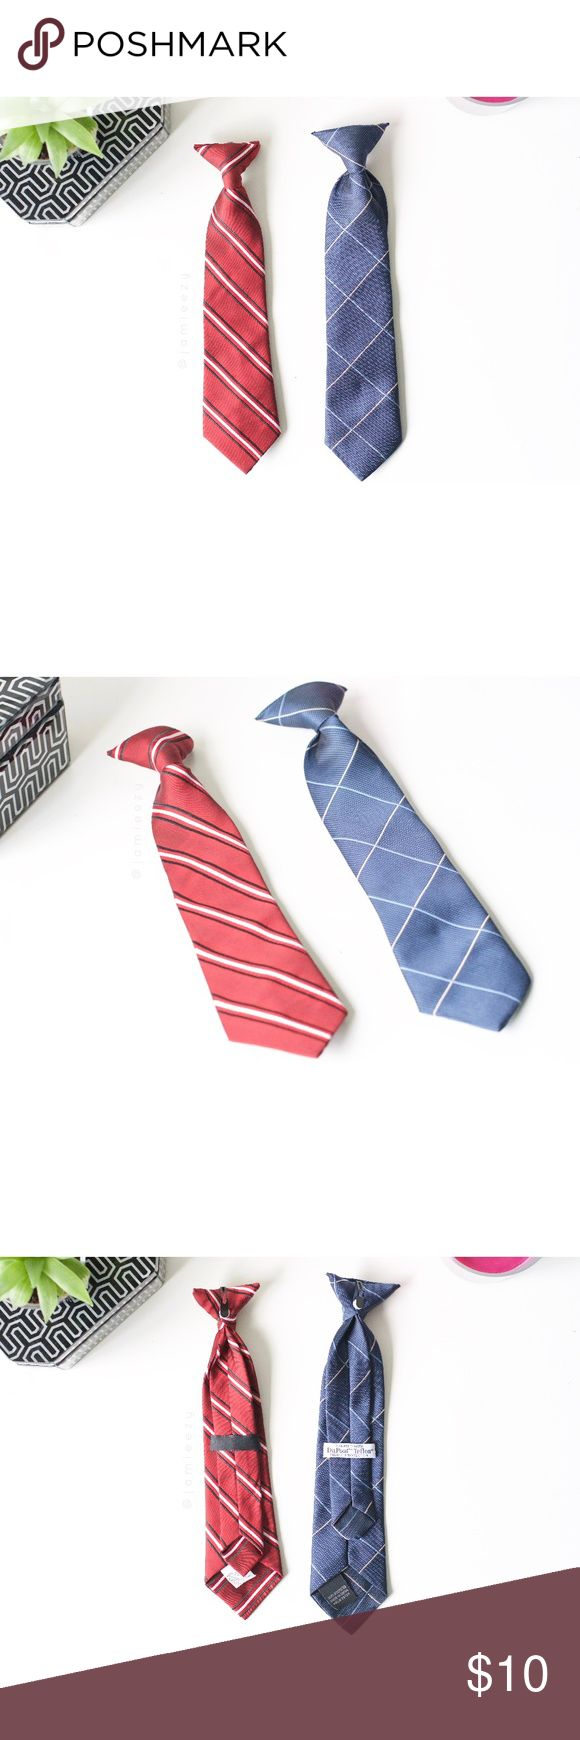 Set of 2 Clip-On Ties Set of 2 clip-on ties. Red = 10.5-inches long, Blue = 11-inches long. Both are in very lightly used condition--no flaws. Price is firm. No trades. Bundle for discount. Accessories Ties